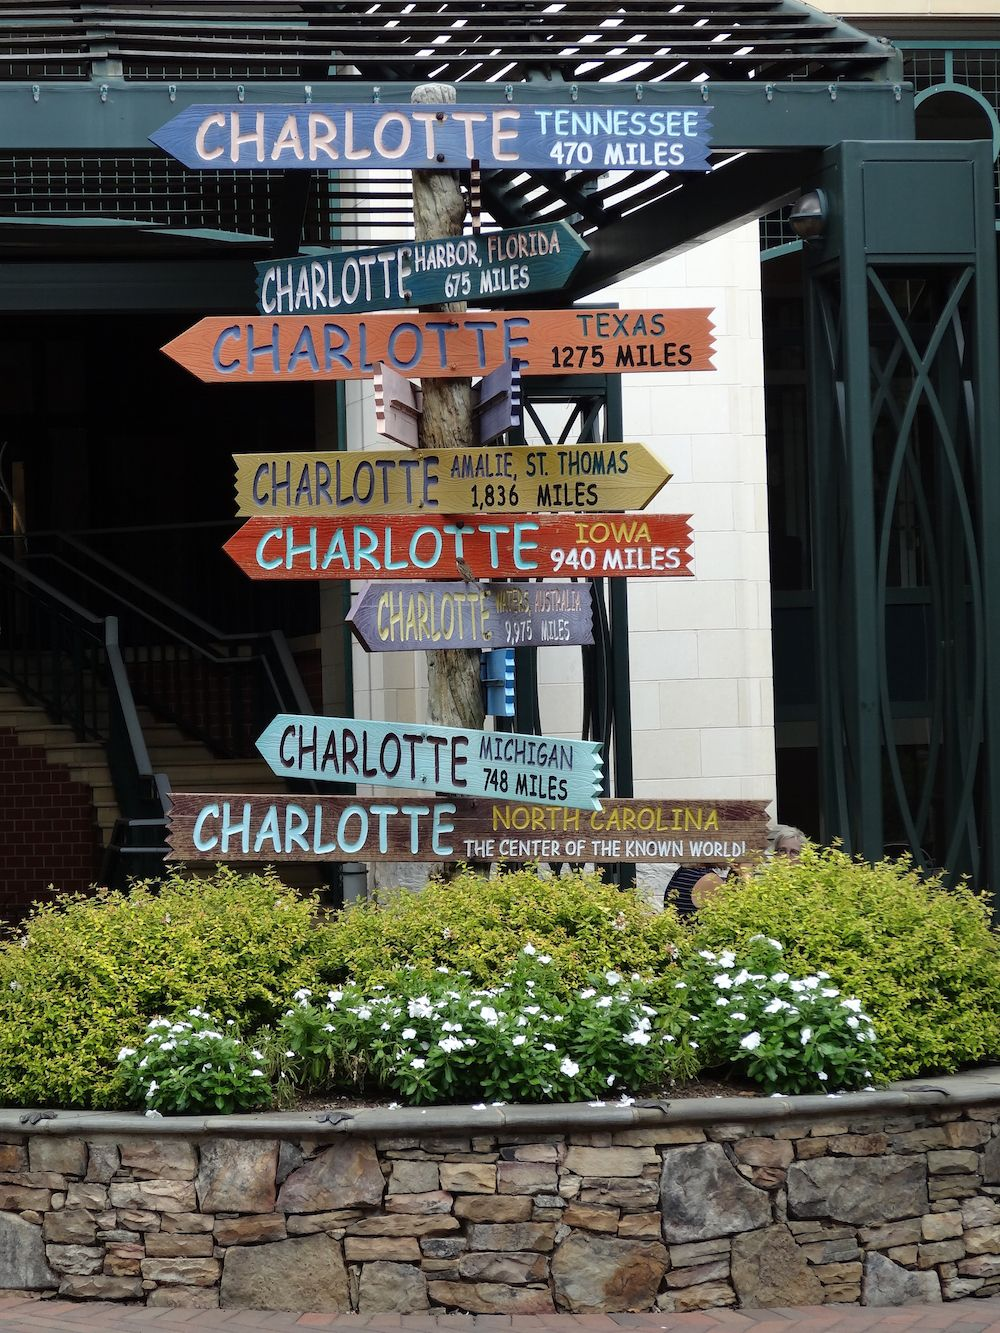 Moving To Charlotte Nc The Apartment Guide Blog Contact Me Through Dupontrealestate If You Need Assistance In Finding A Home